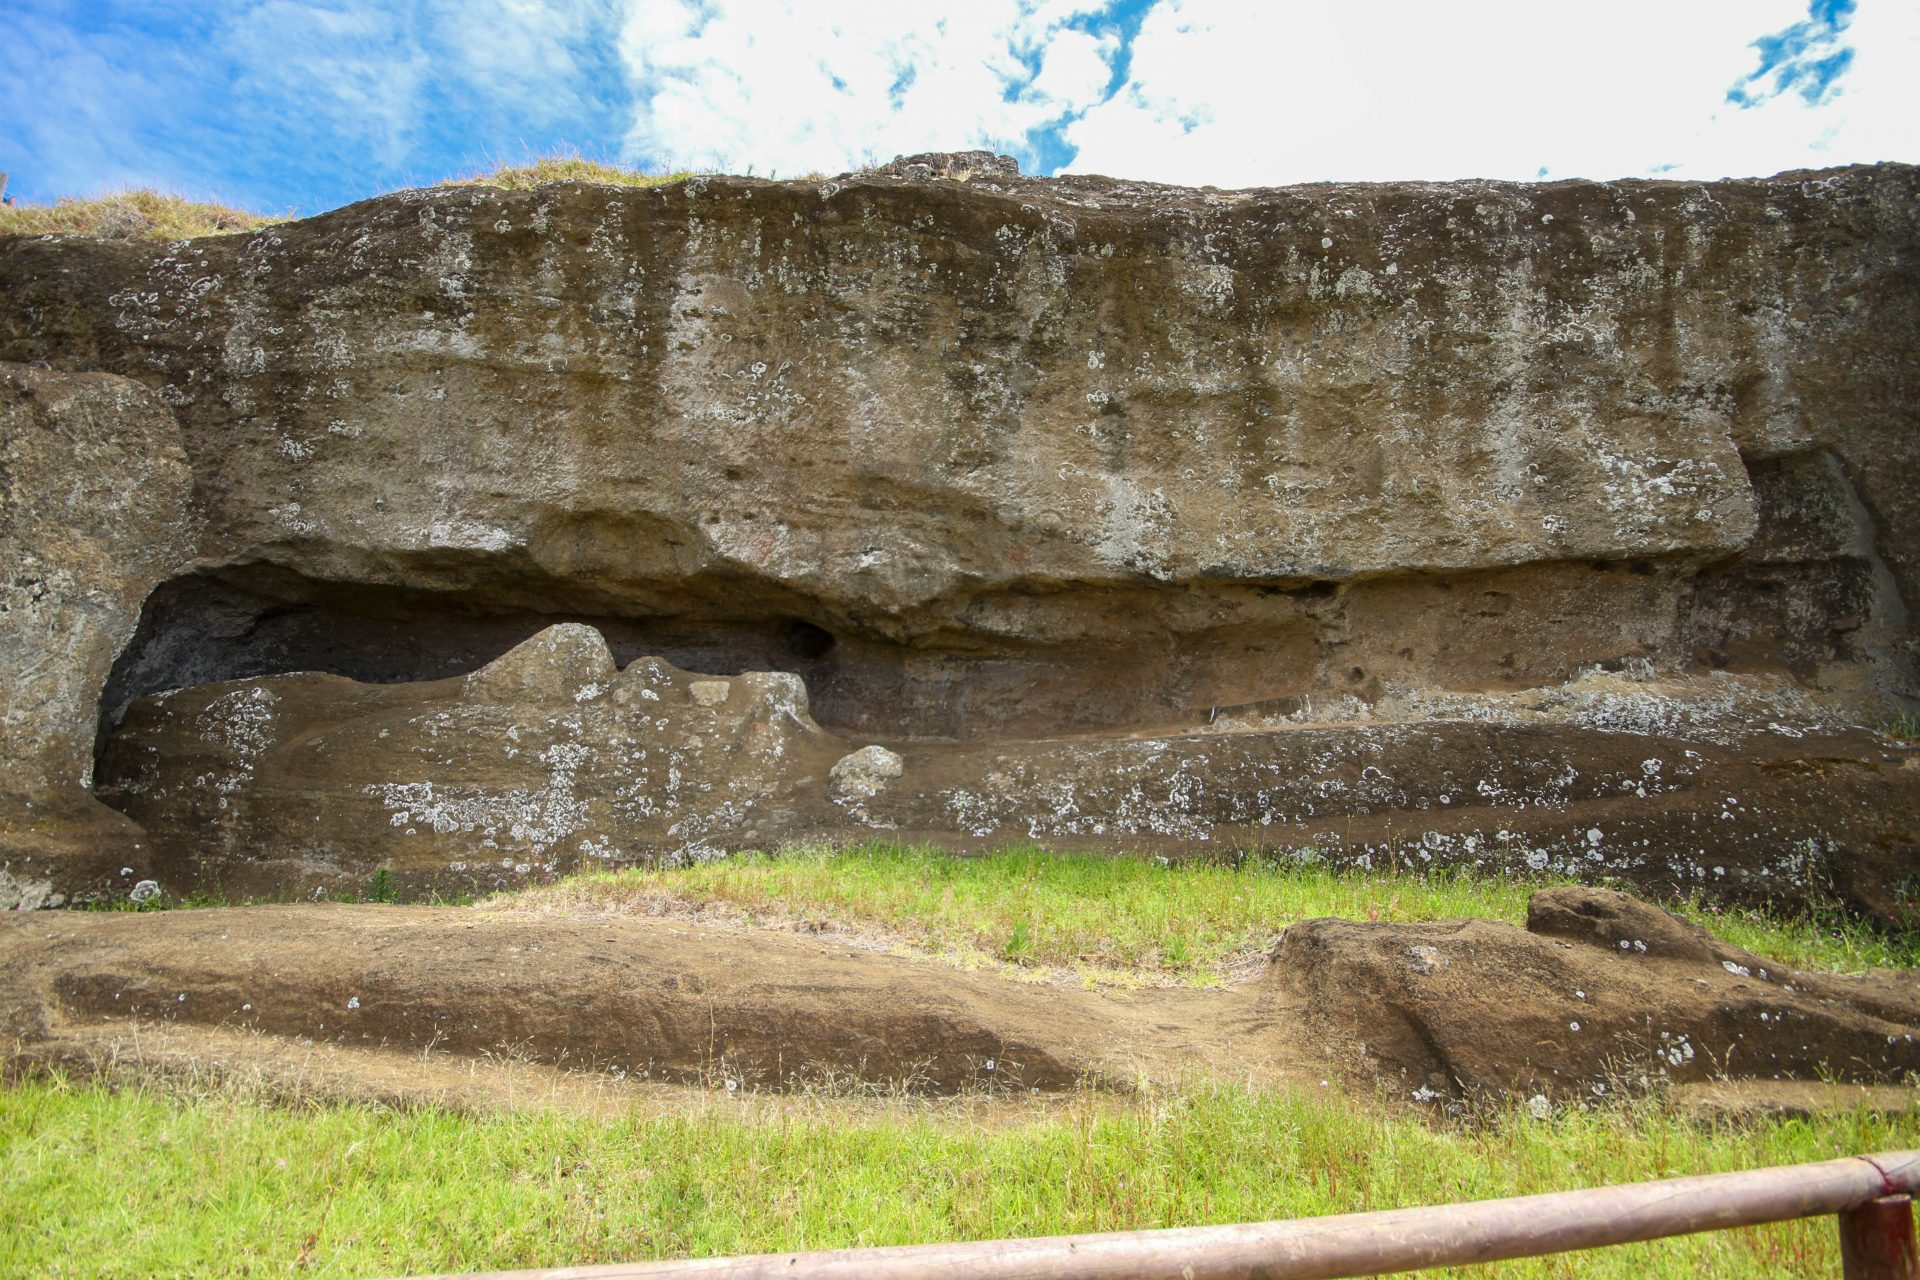 two moai lie incomplete at Rano Raraku on Easter Island. One sits partially carved out of a cliff, while a second lies on the ground in front of it